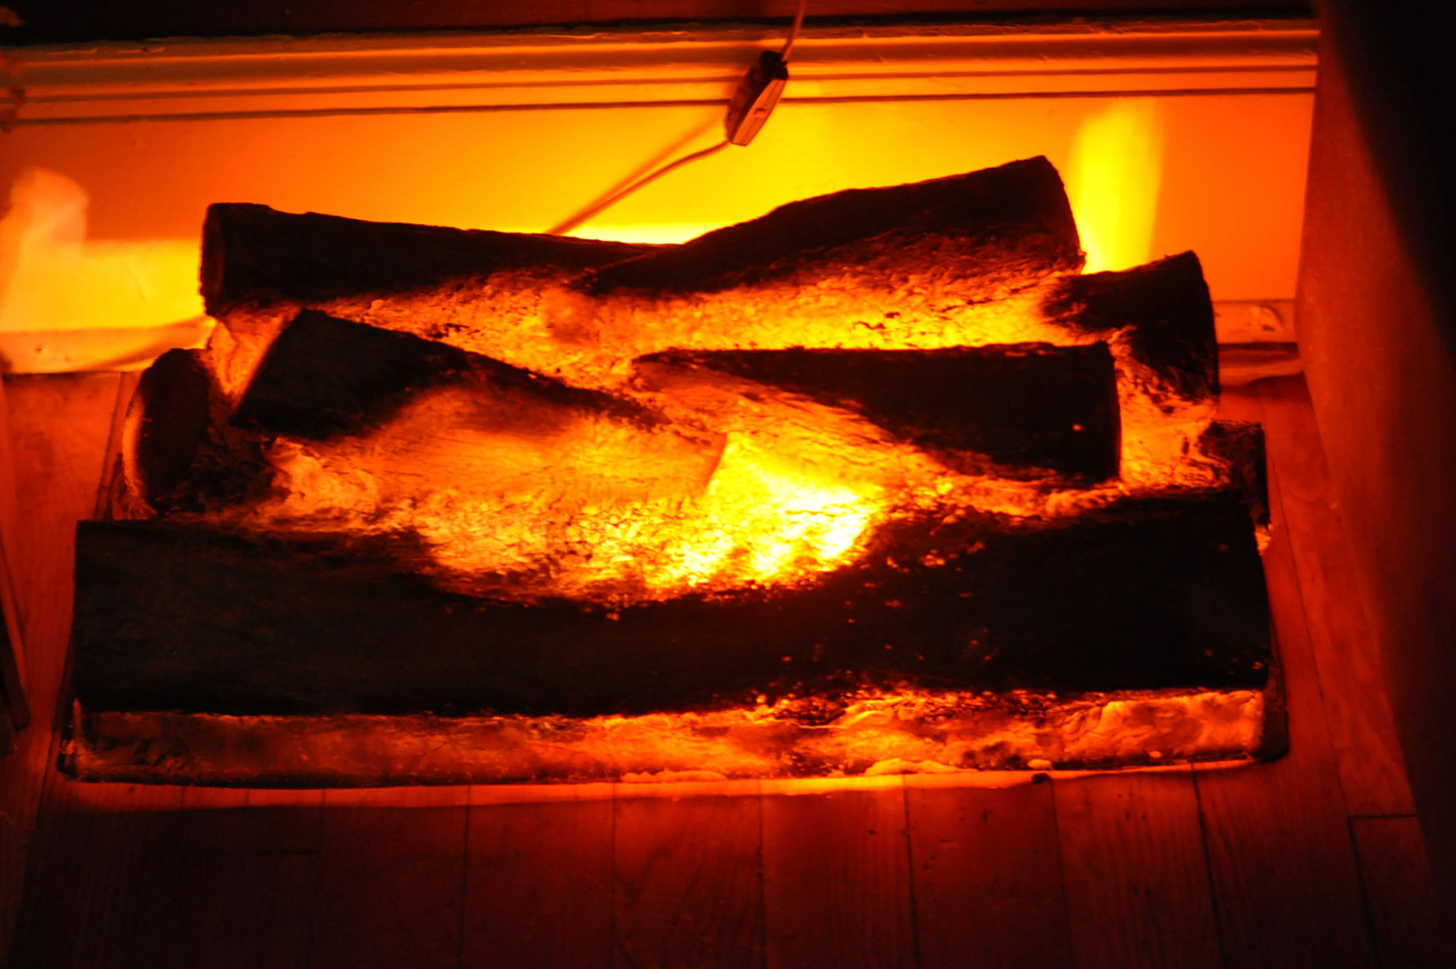 Fake Fire Logs For Fireplace Home Design Ideas